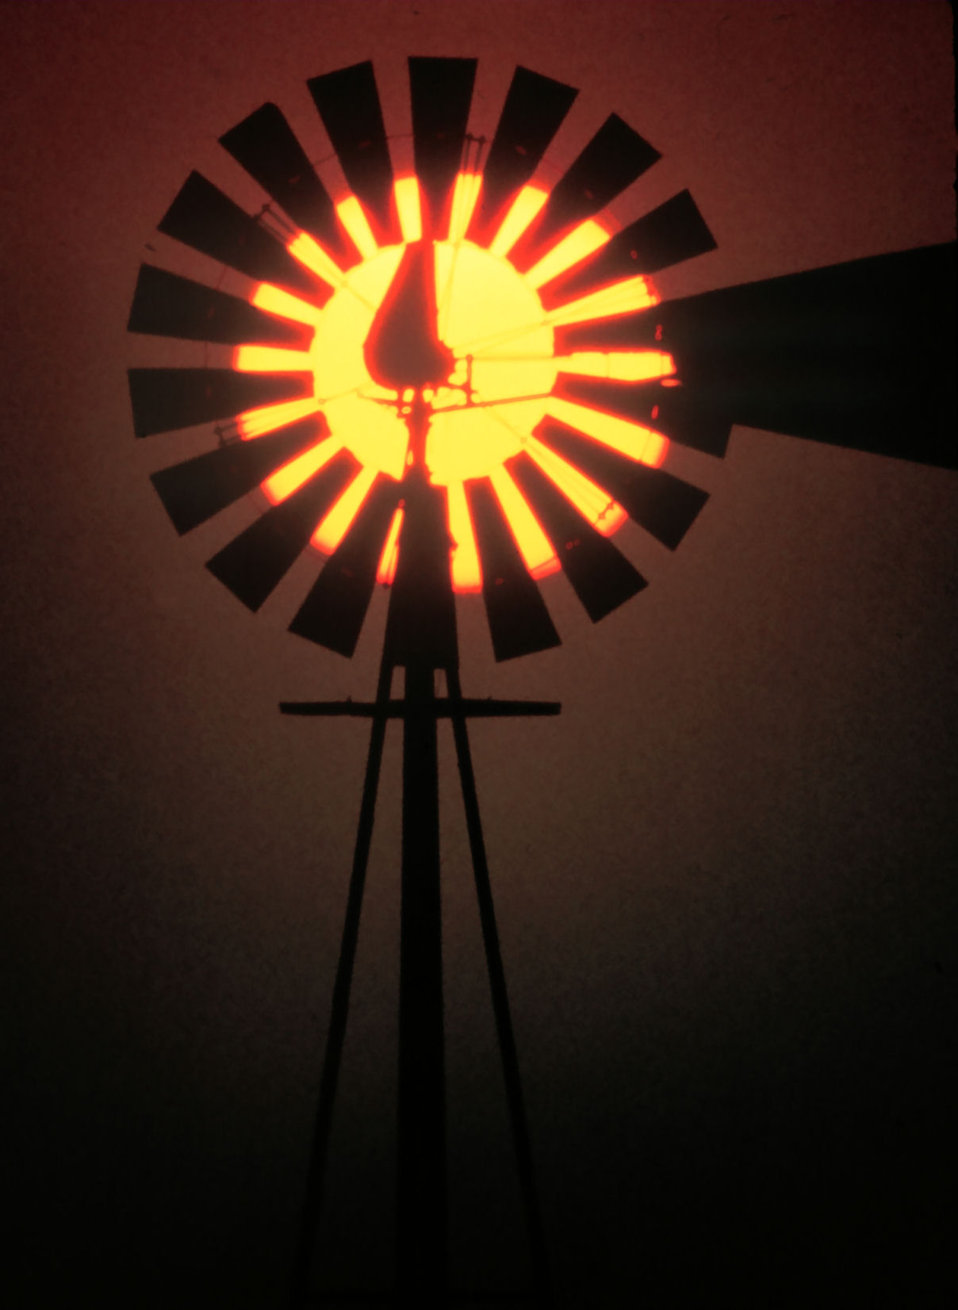 A windmill sunset